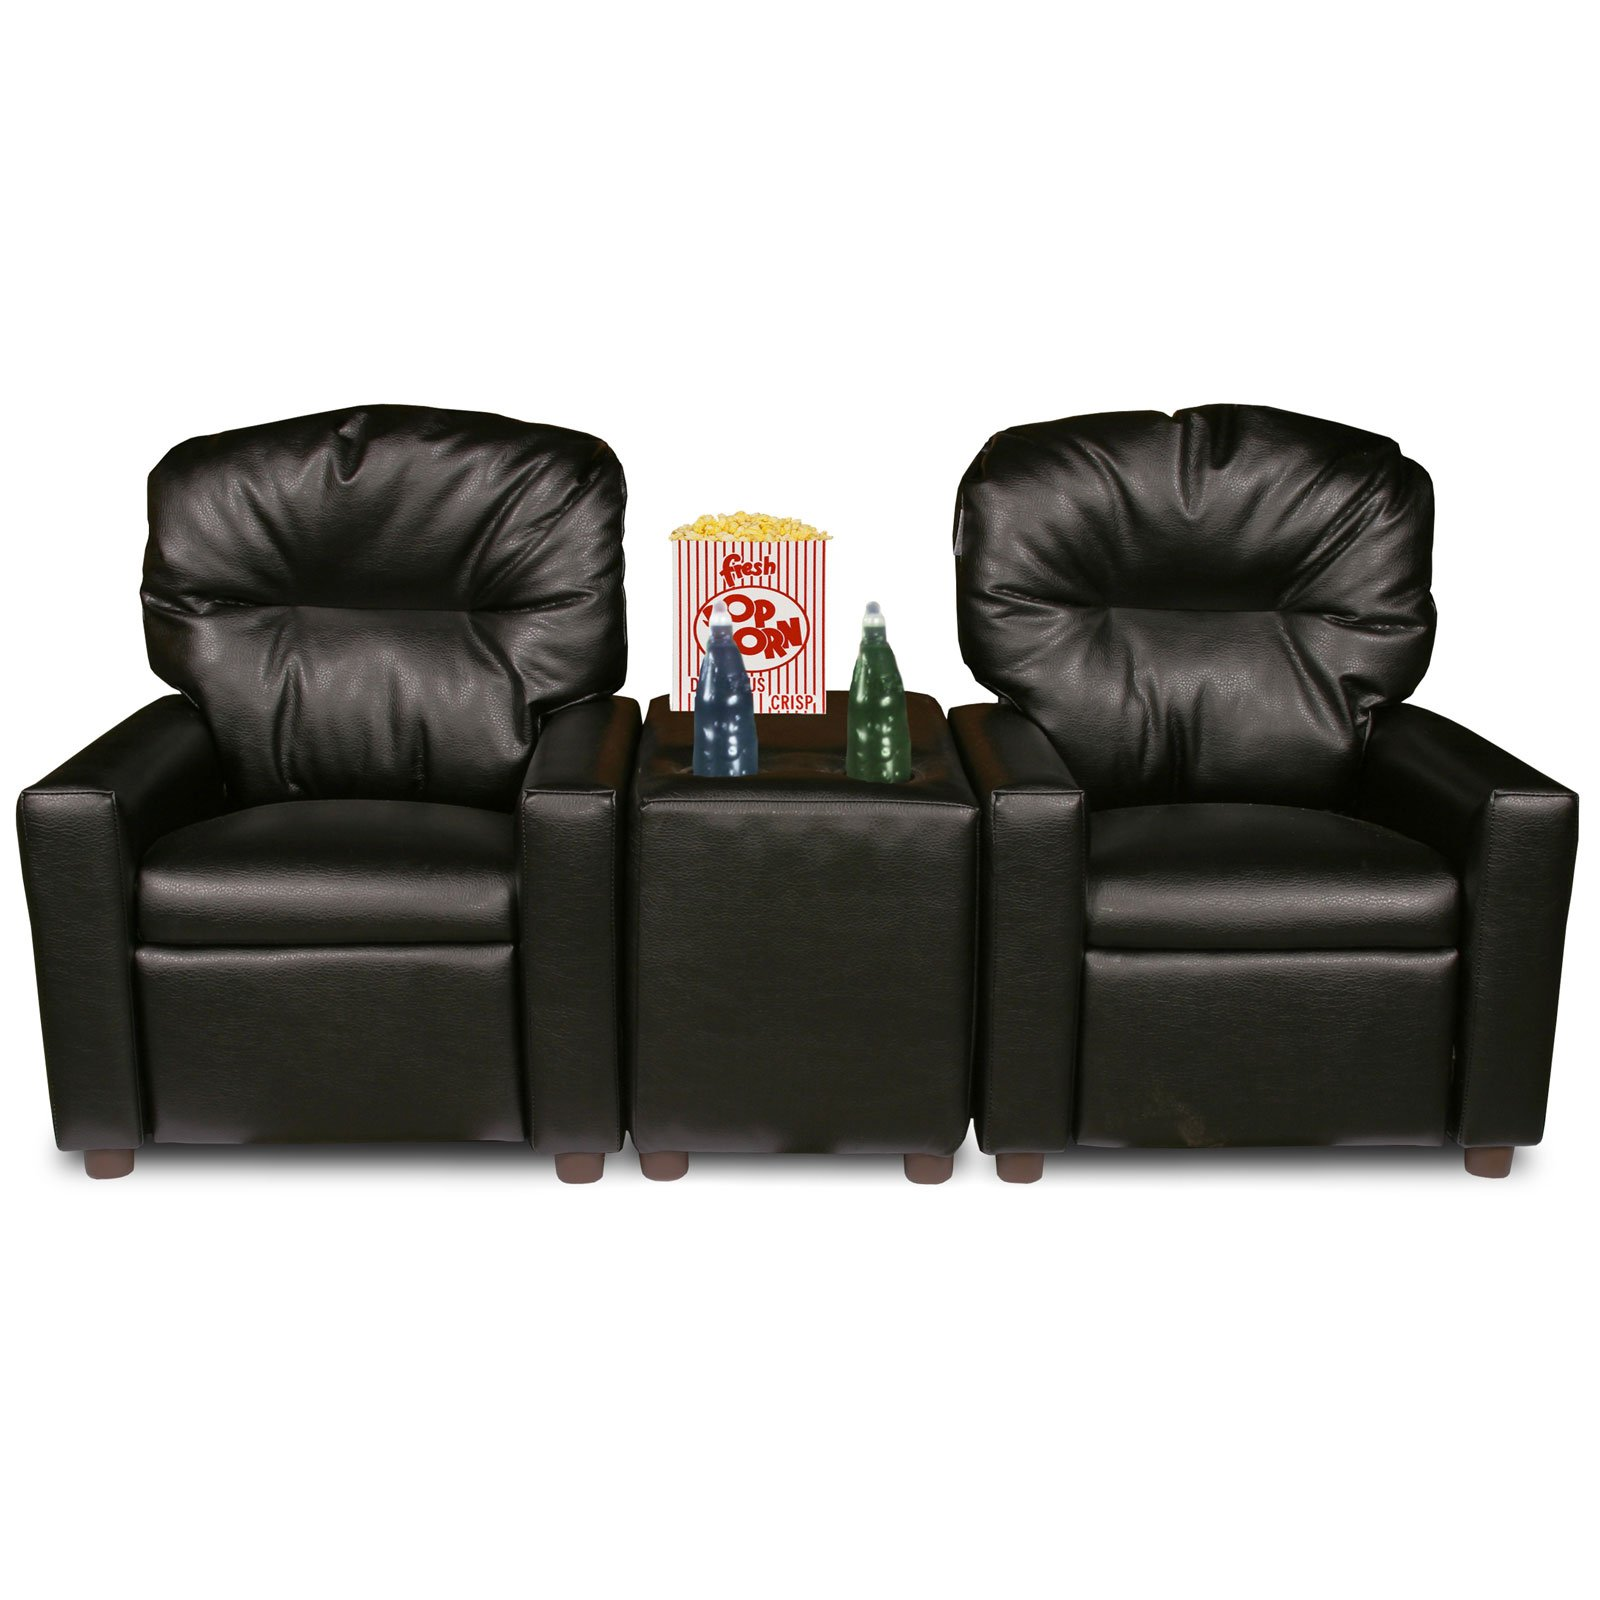 Dozydotes Kids 2 Seat Theater Seating Recliner Walmart